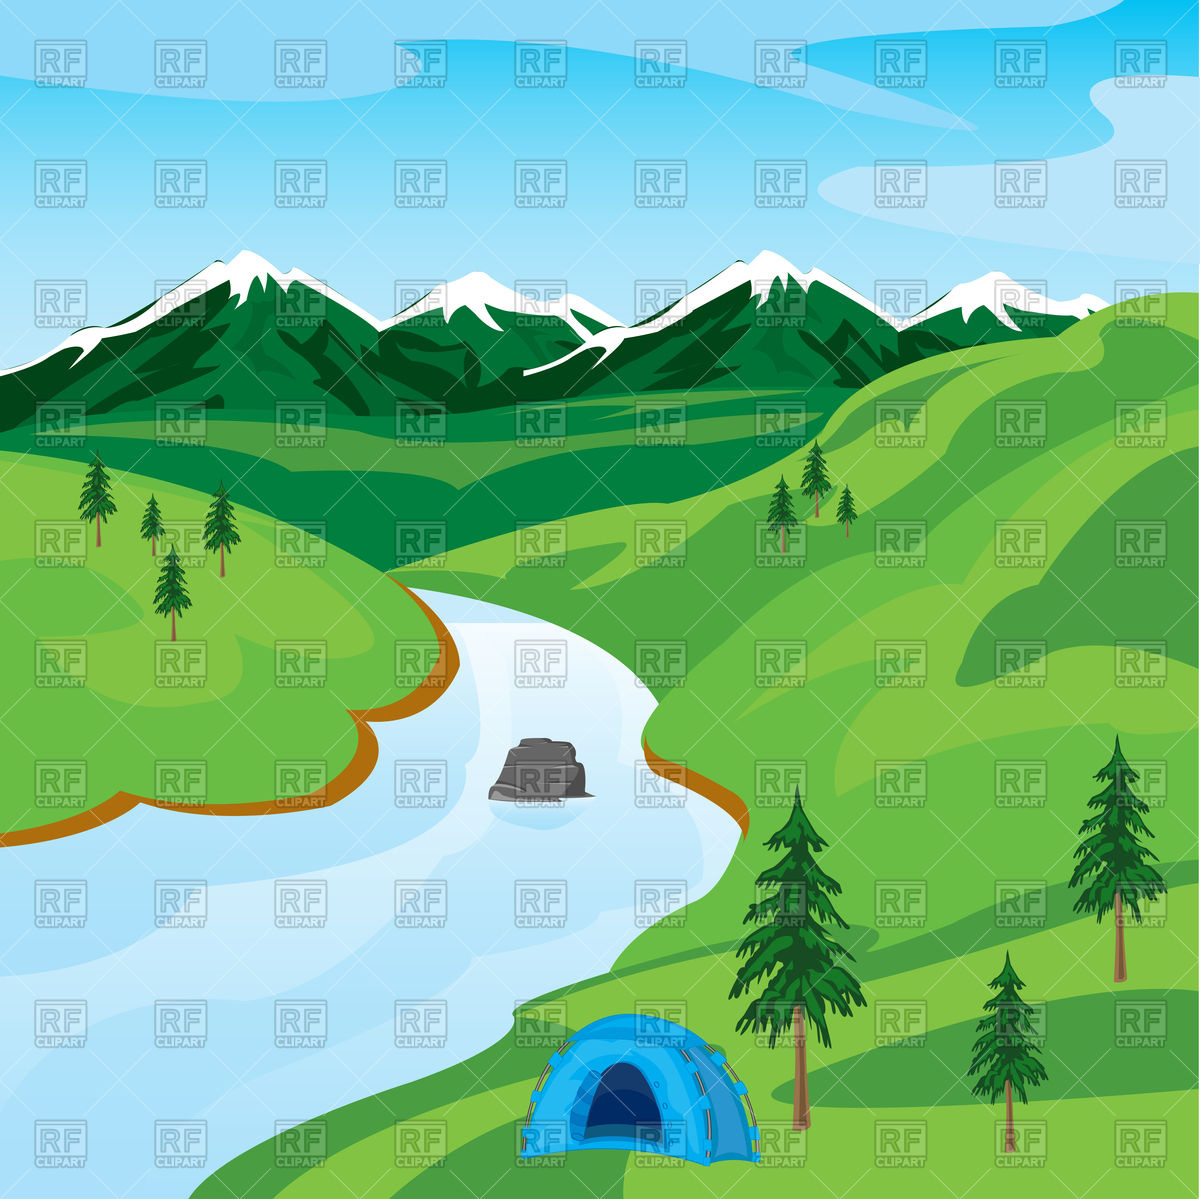 Nature clipart river. Clip art library